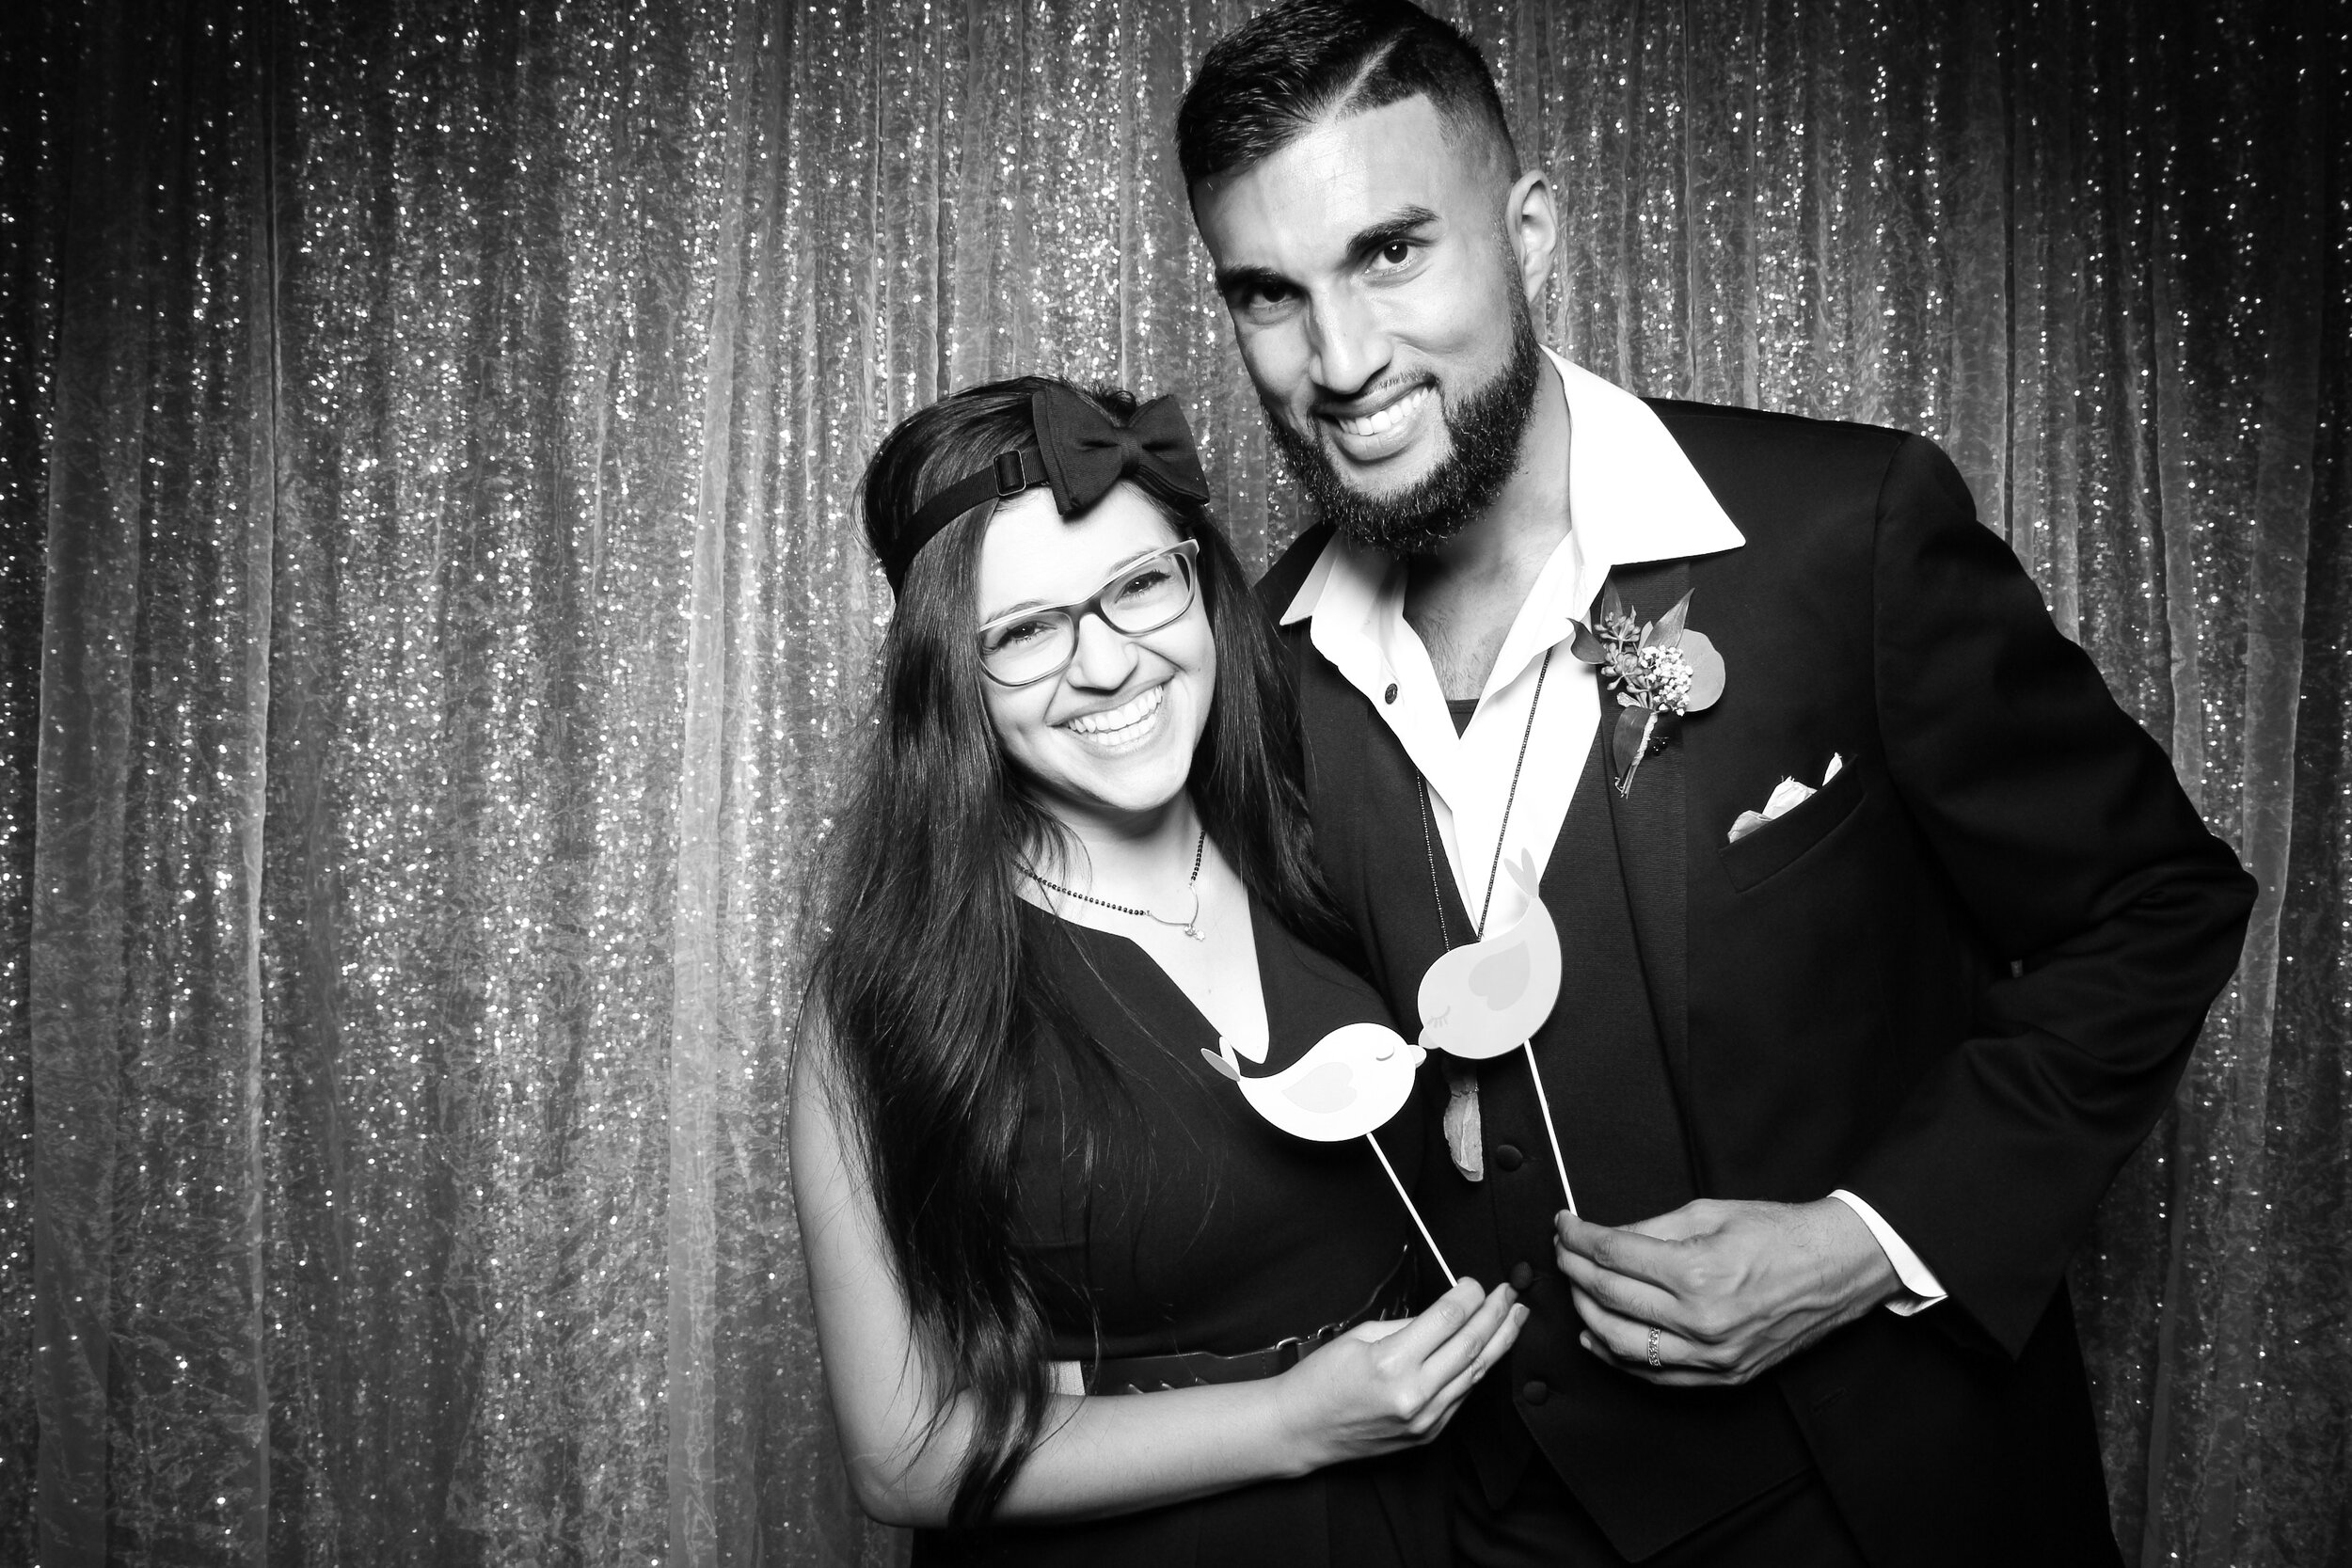 Ravisloe_Country_Club_Wedding_Photo_Booth_25.jpg